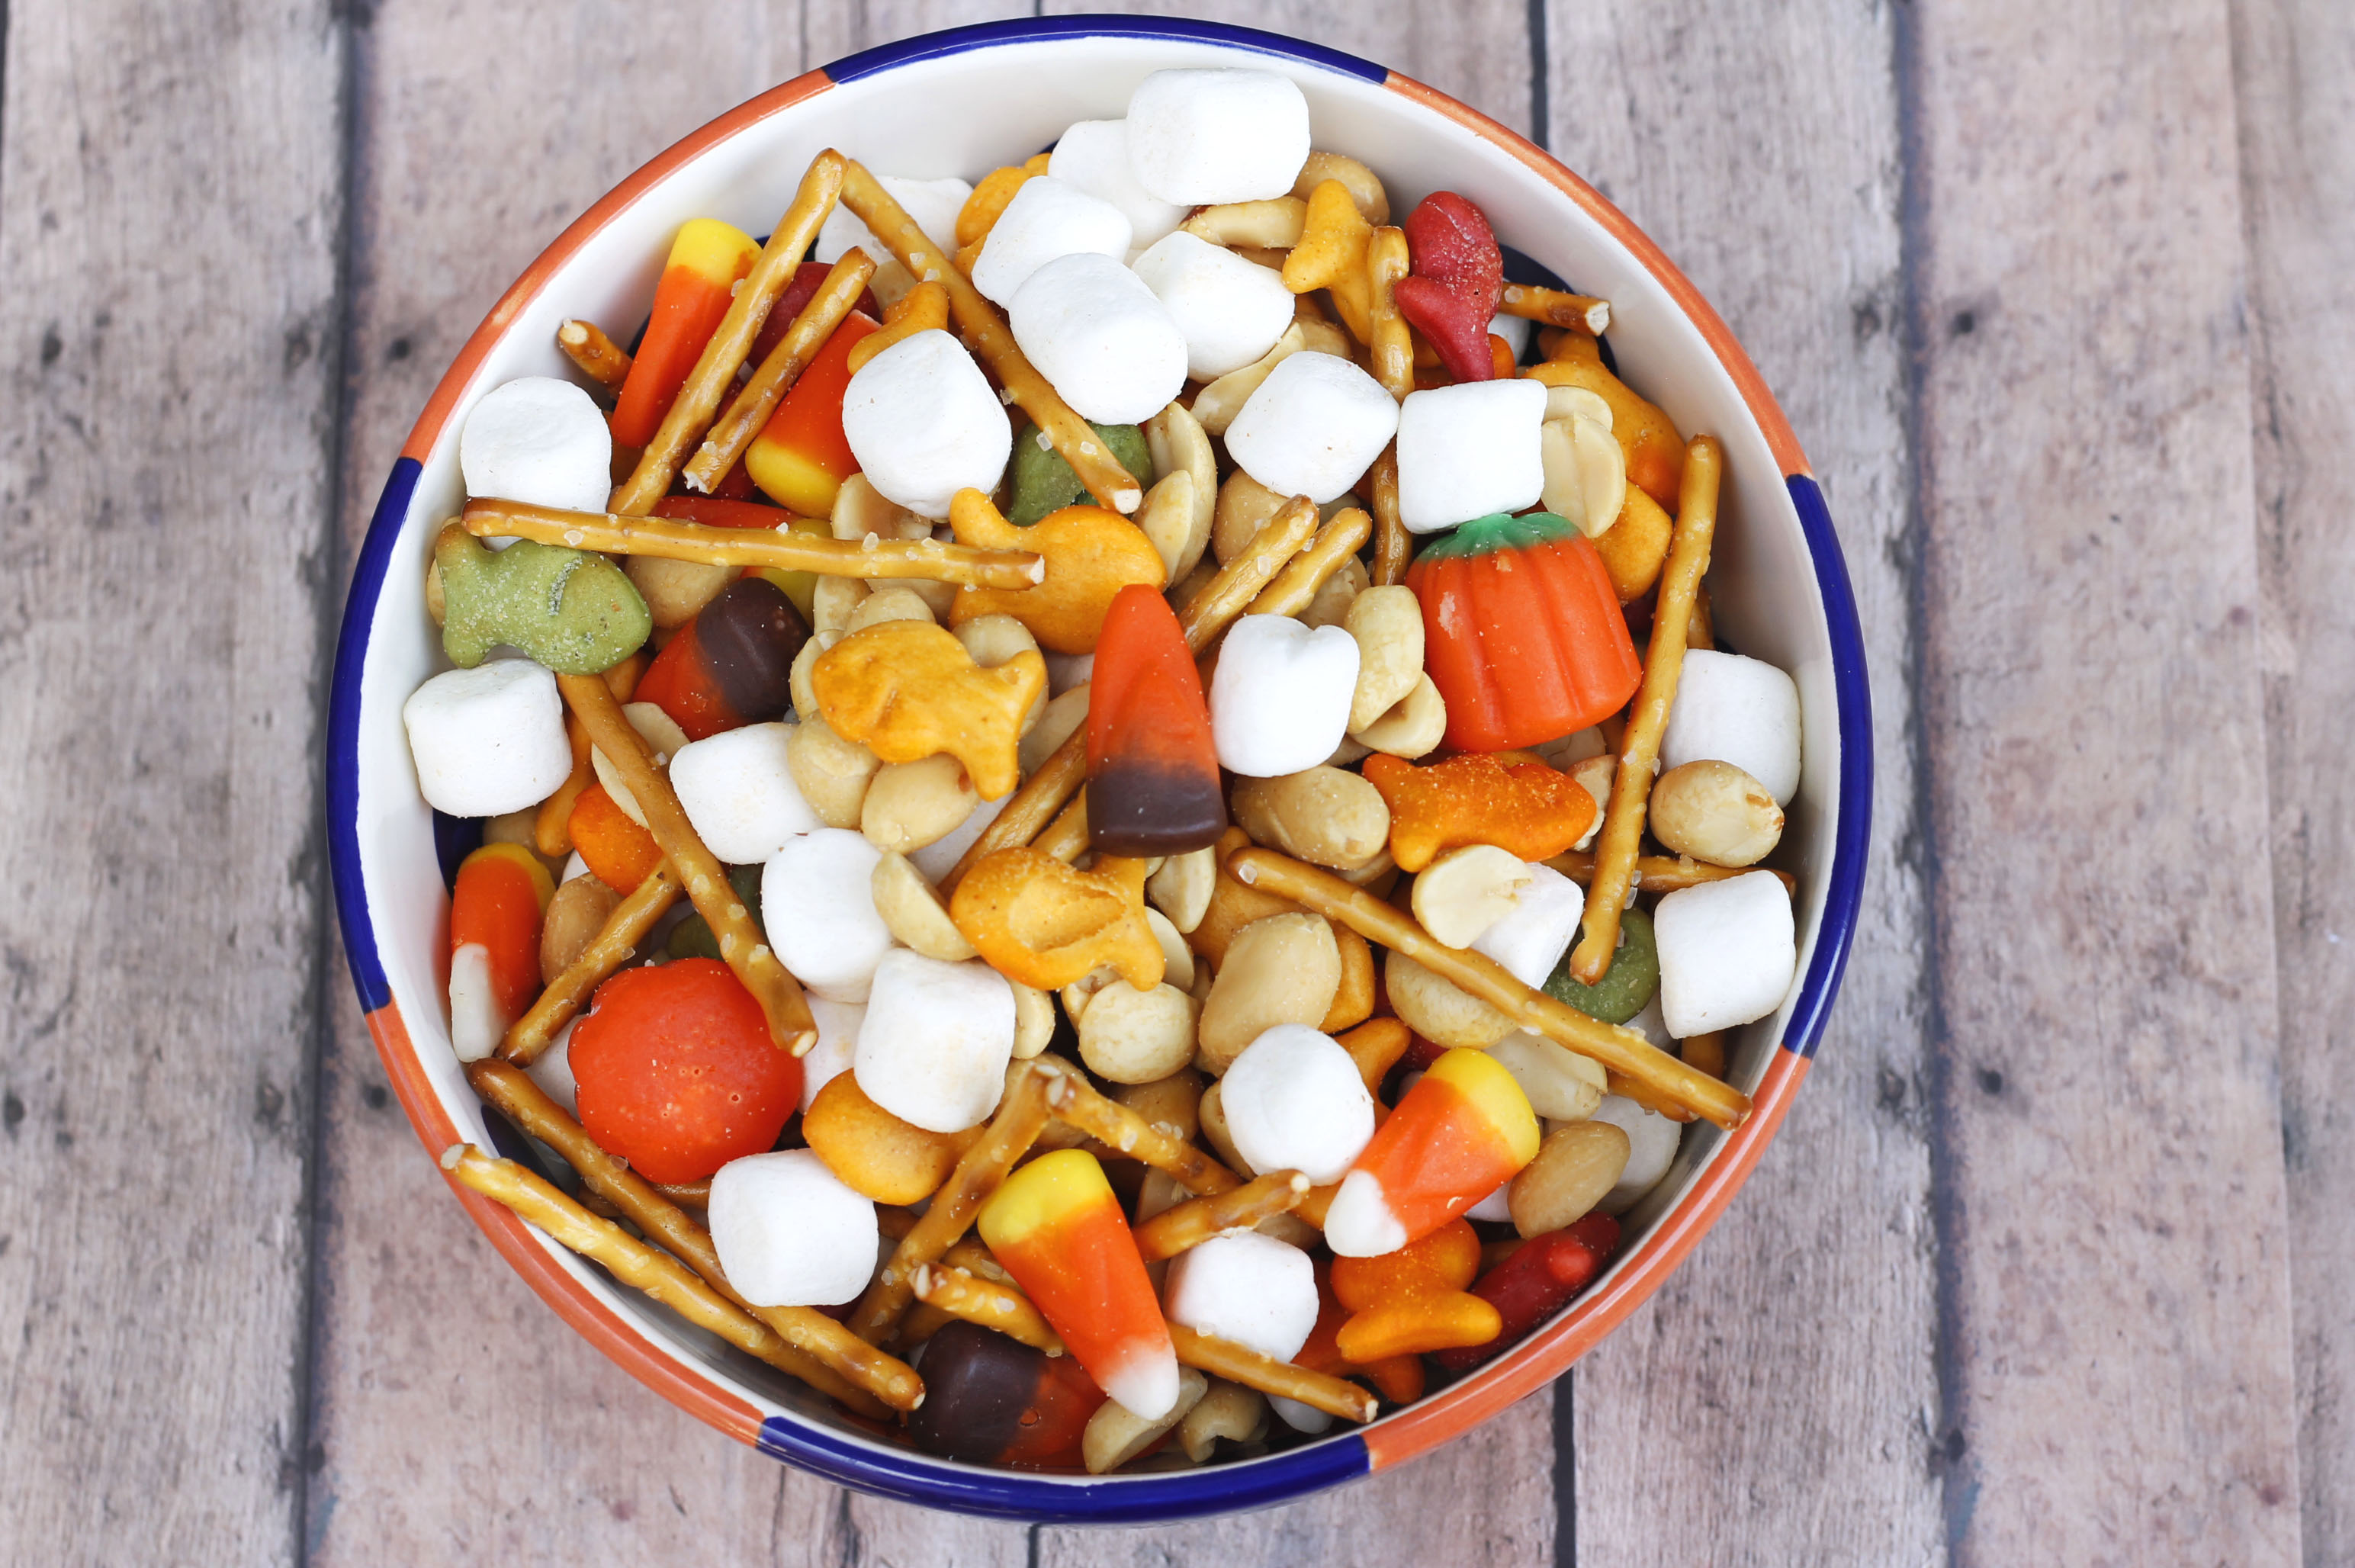 Fall Festival Mix is the perfect road trip snack.